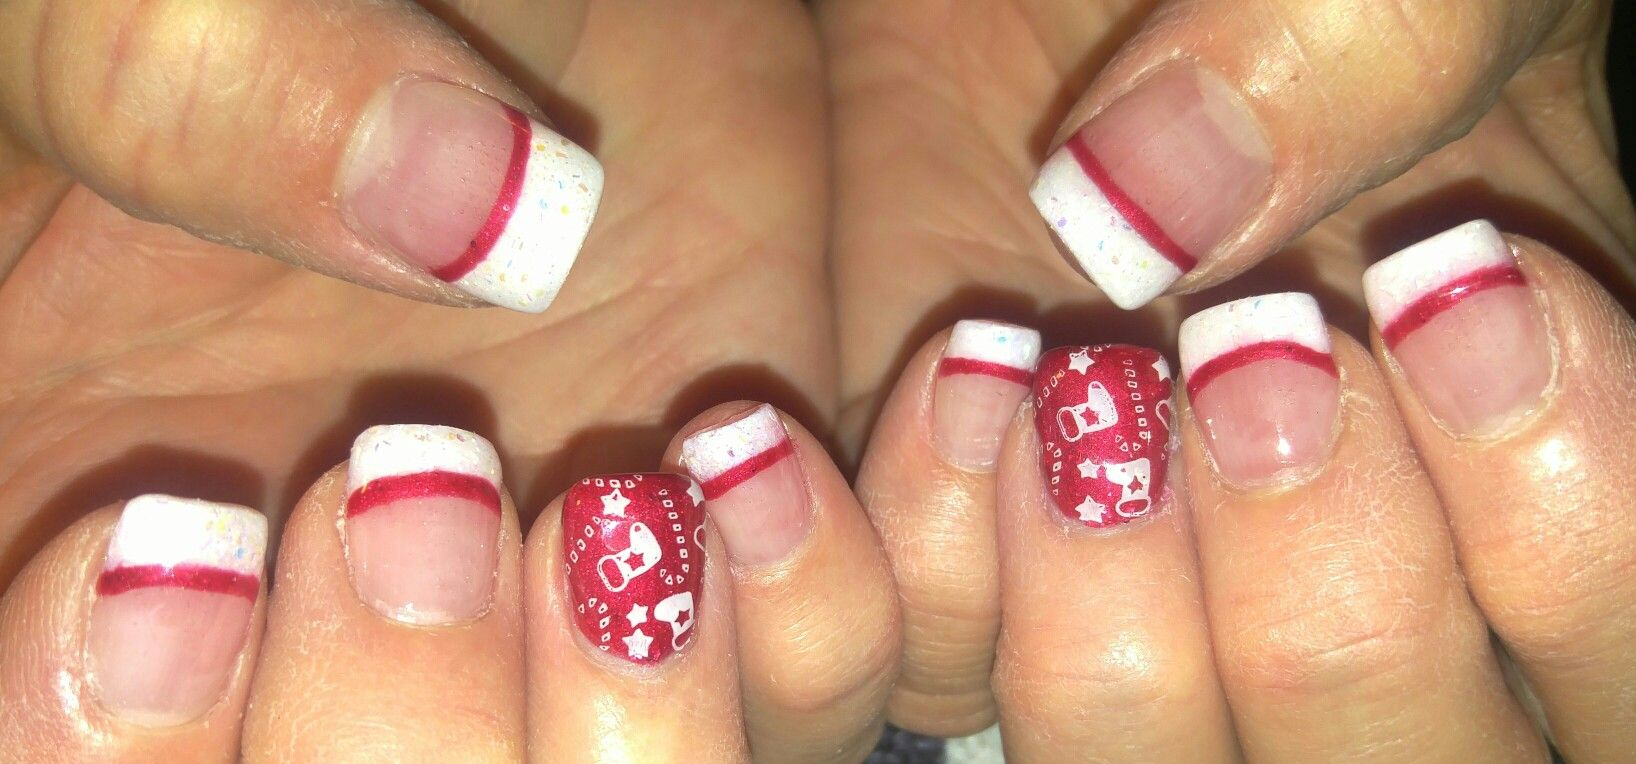 Christmas Stocking Inspired Nails Glittery Pink And White French Tip Acrylic With Stamped Nail Art A Hand Painted Red Line Gel Top Coat